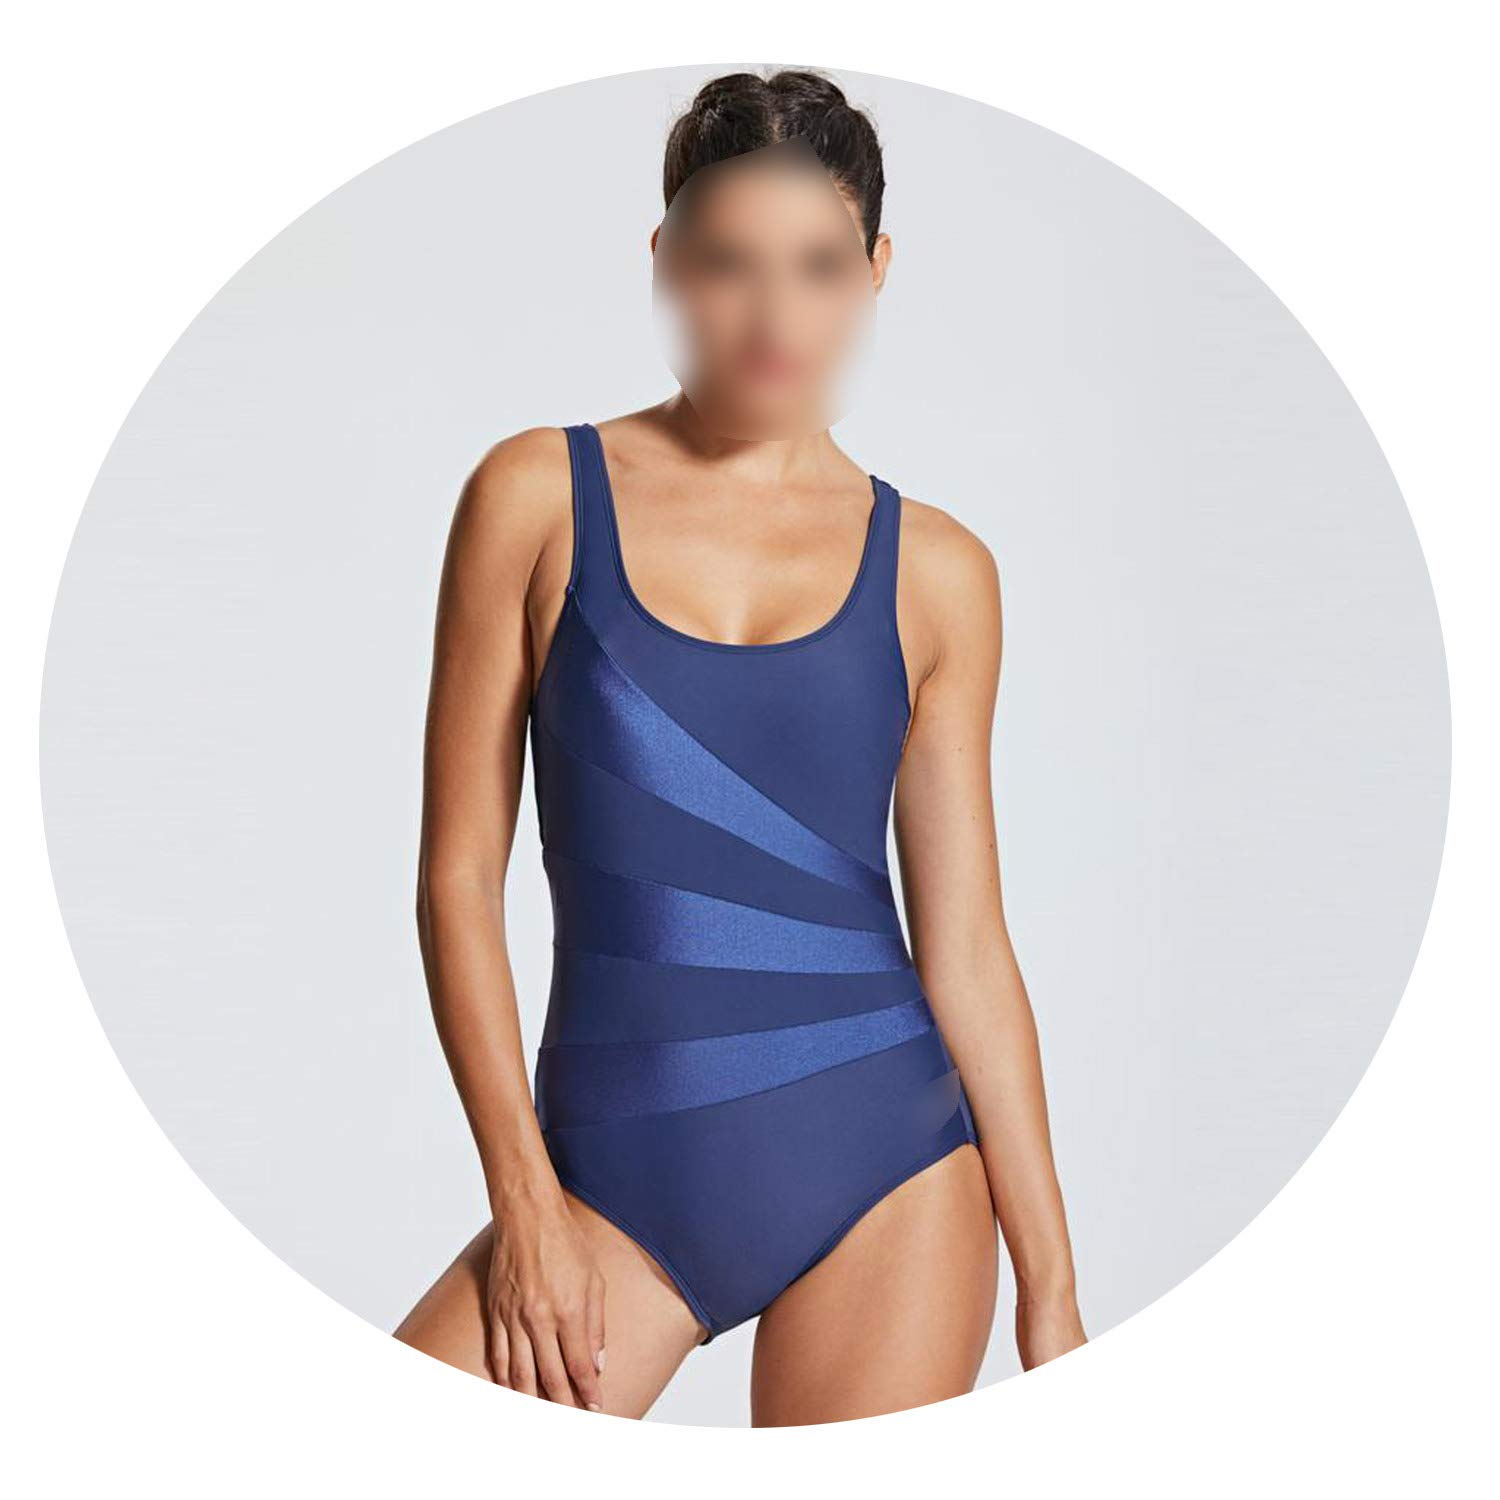 People Like Me 2019 New Womens Striped Athletic Training Conservative One Piece Swimsuit Ladies Swimwear,Navy02,40